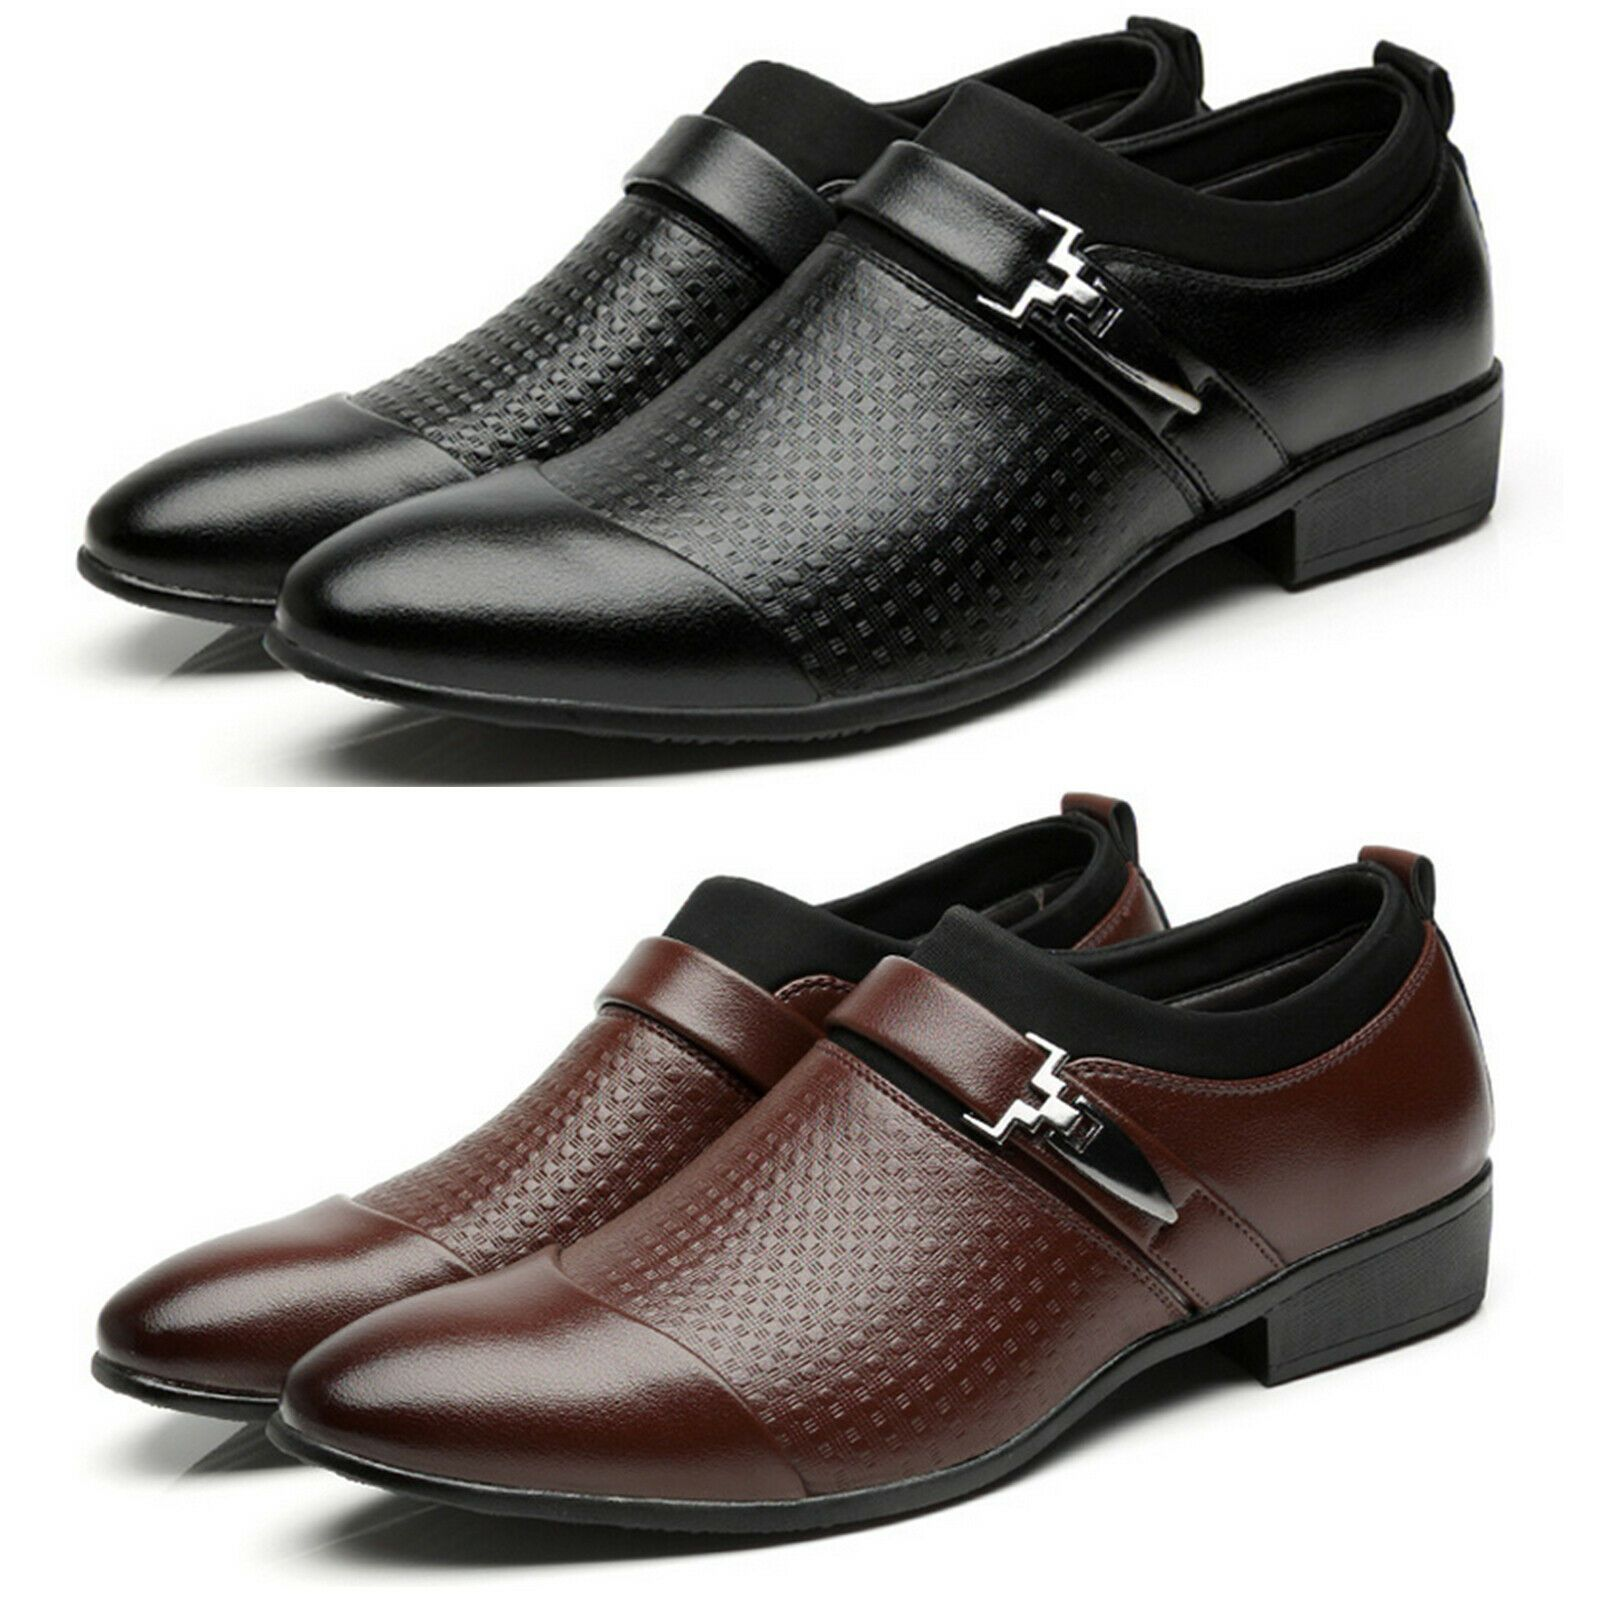 Mens Smart Tuxedo Dress Shoes Formal Wedding Office Pointed Toe Slip On Loafers